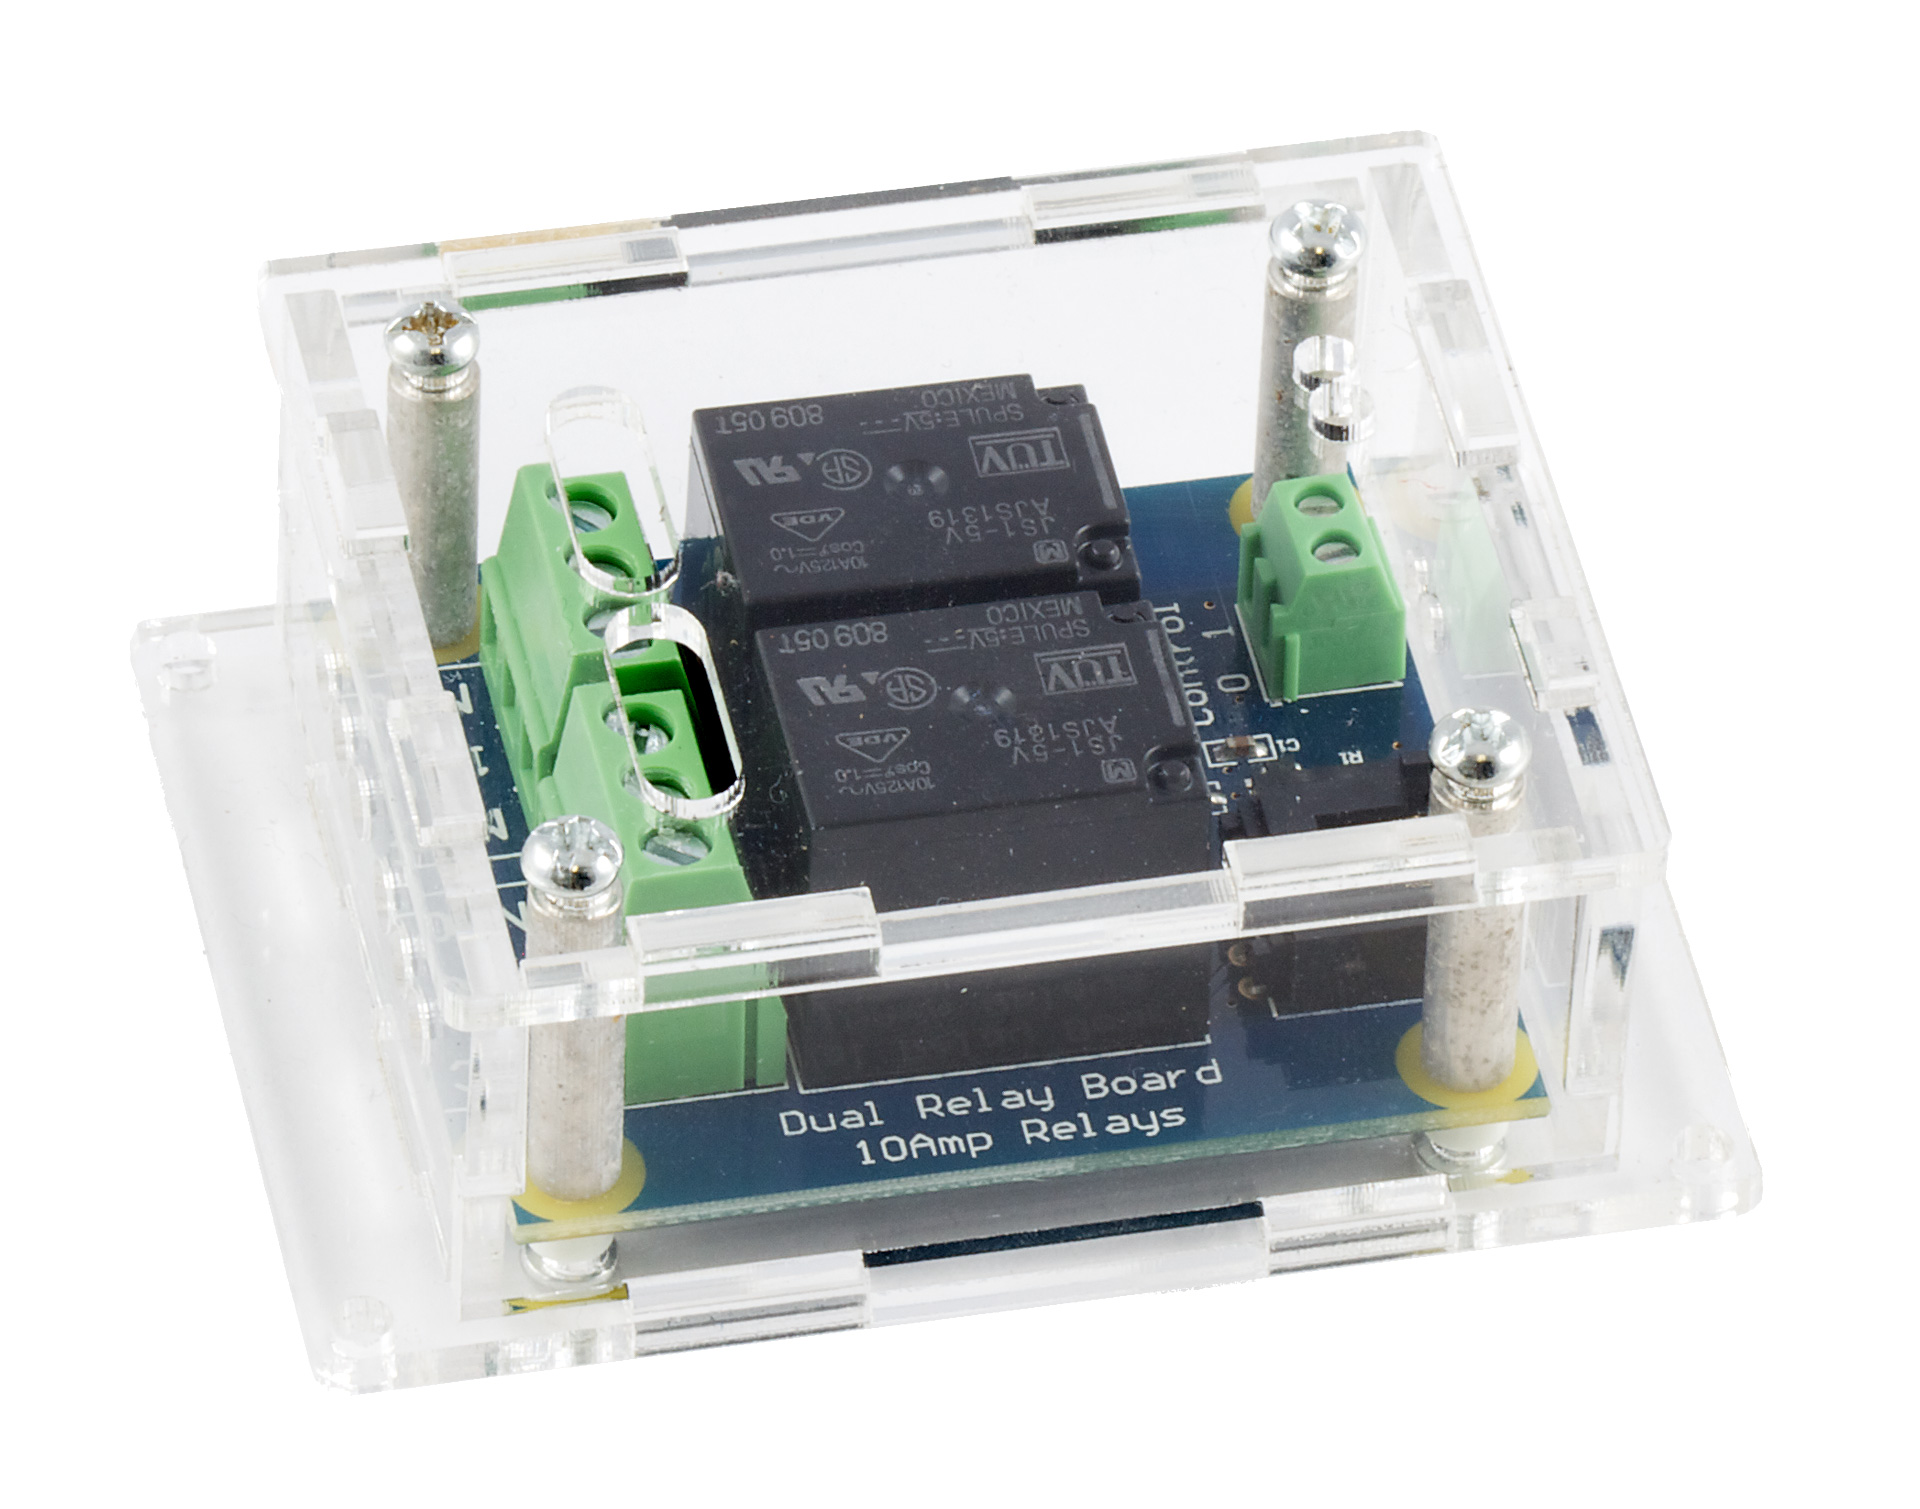 Dual Relay Board 3051 1 At Phidgets Common Terminal In Enclosure Sold Separately